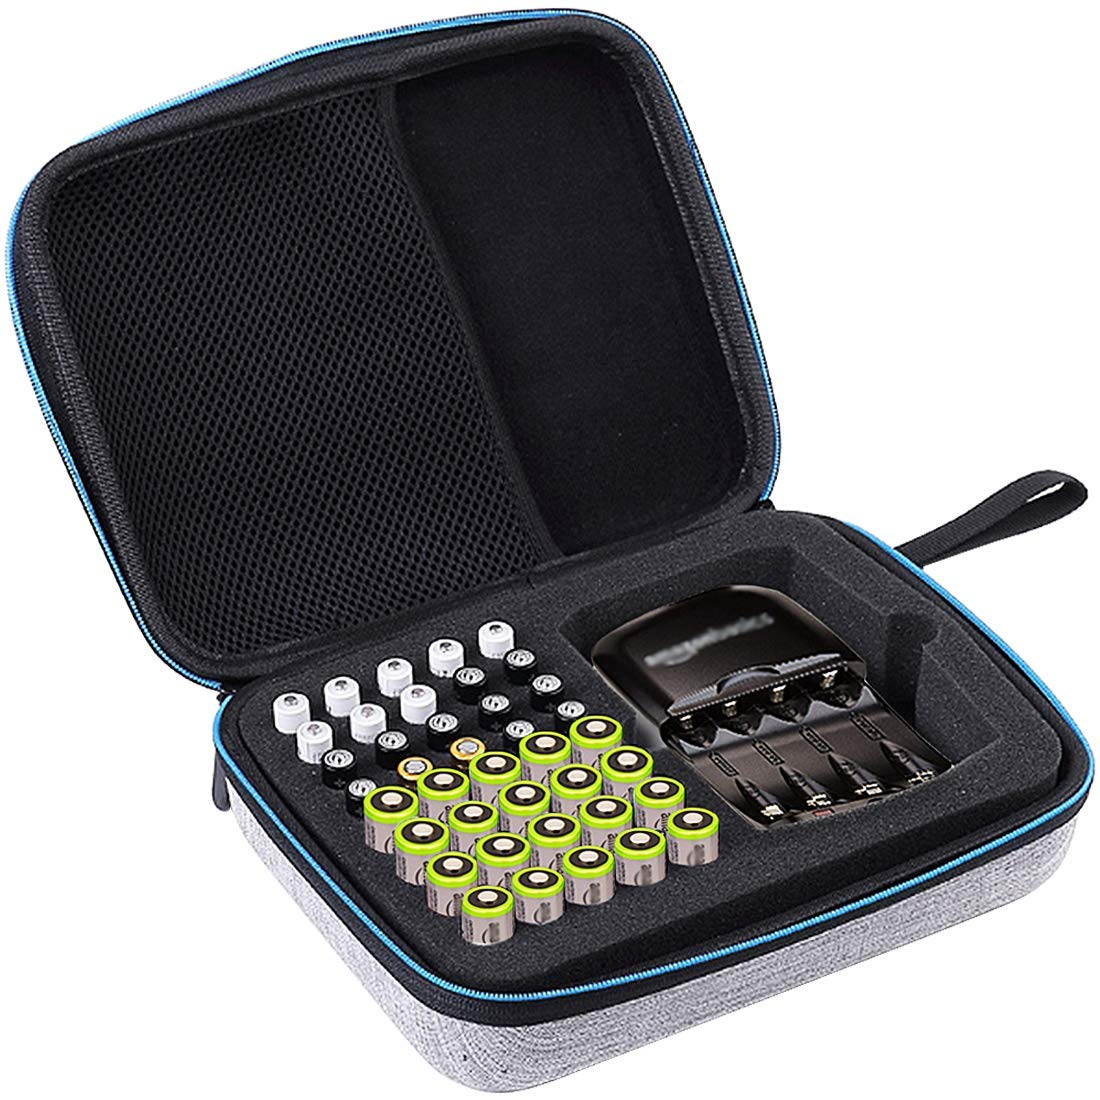 Big Trend Hard Battery Organizer Storage Box Carrying Case Bag Total 40 Batteries(Does not Include Battery and Charger) Holds 20 x AA 20 x AAA